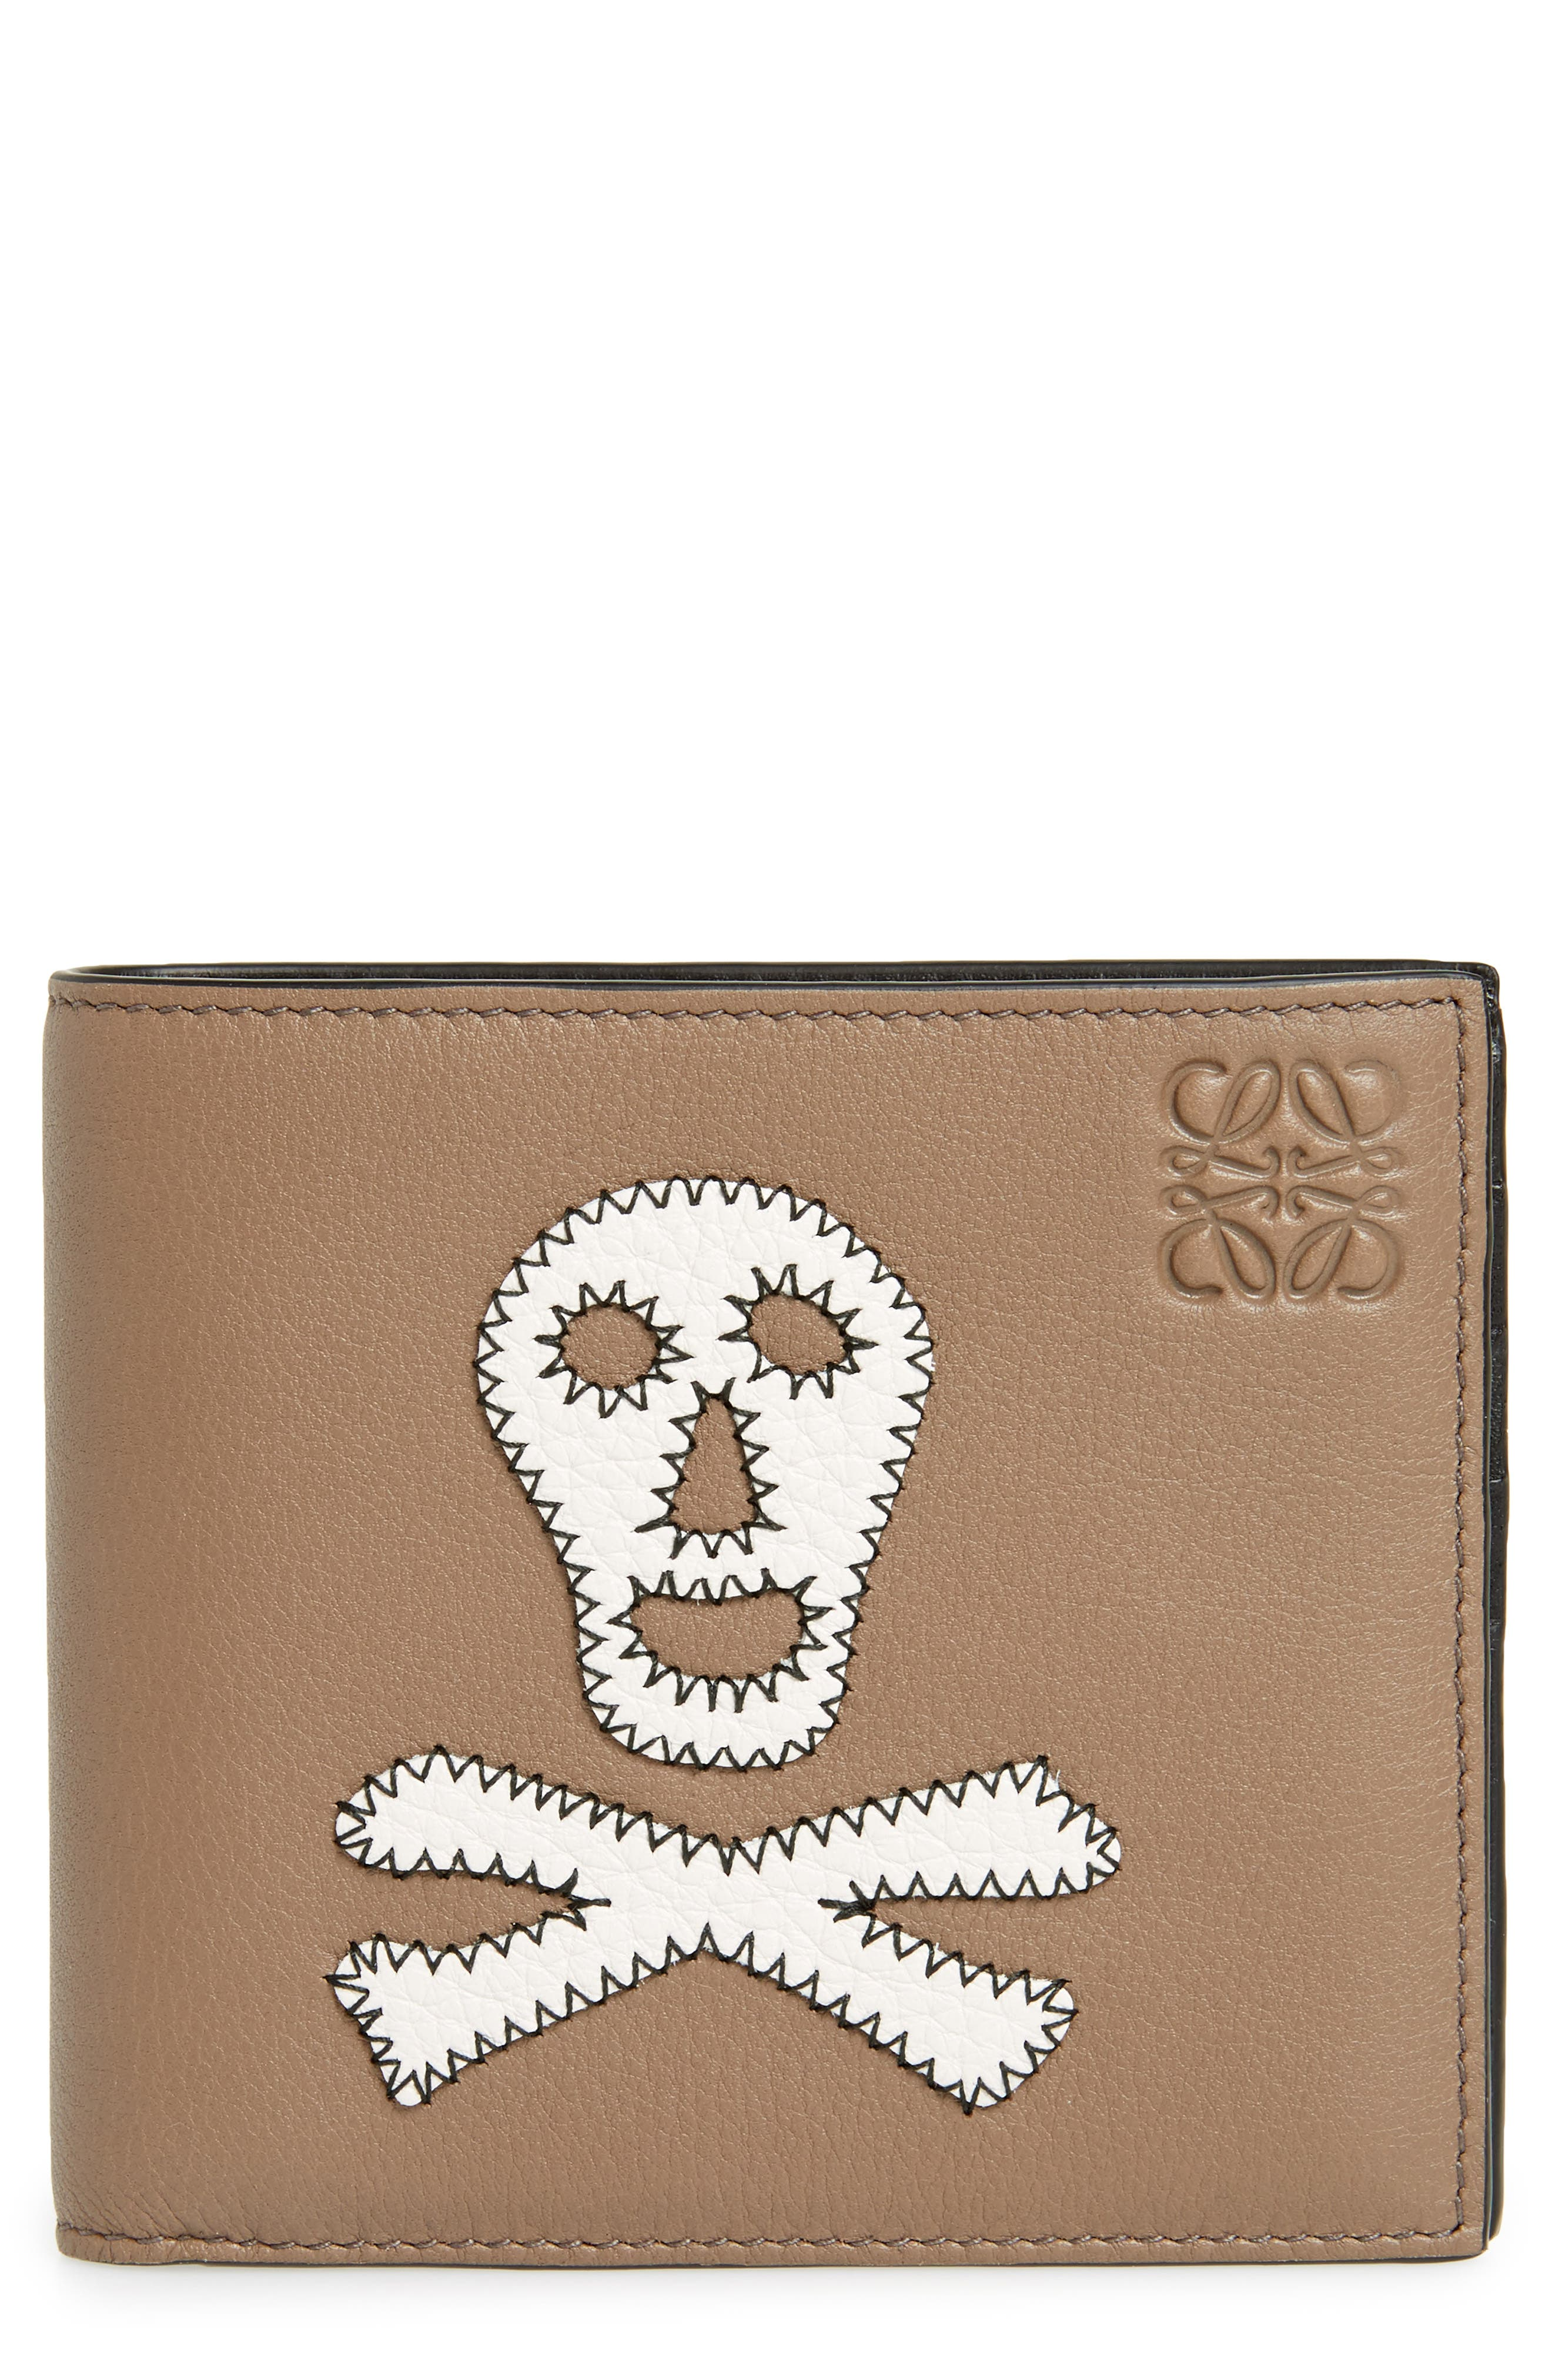 Skull Leather Bifold Wallet,                         Main,                         color, 922